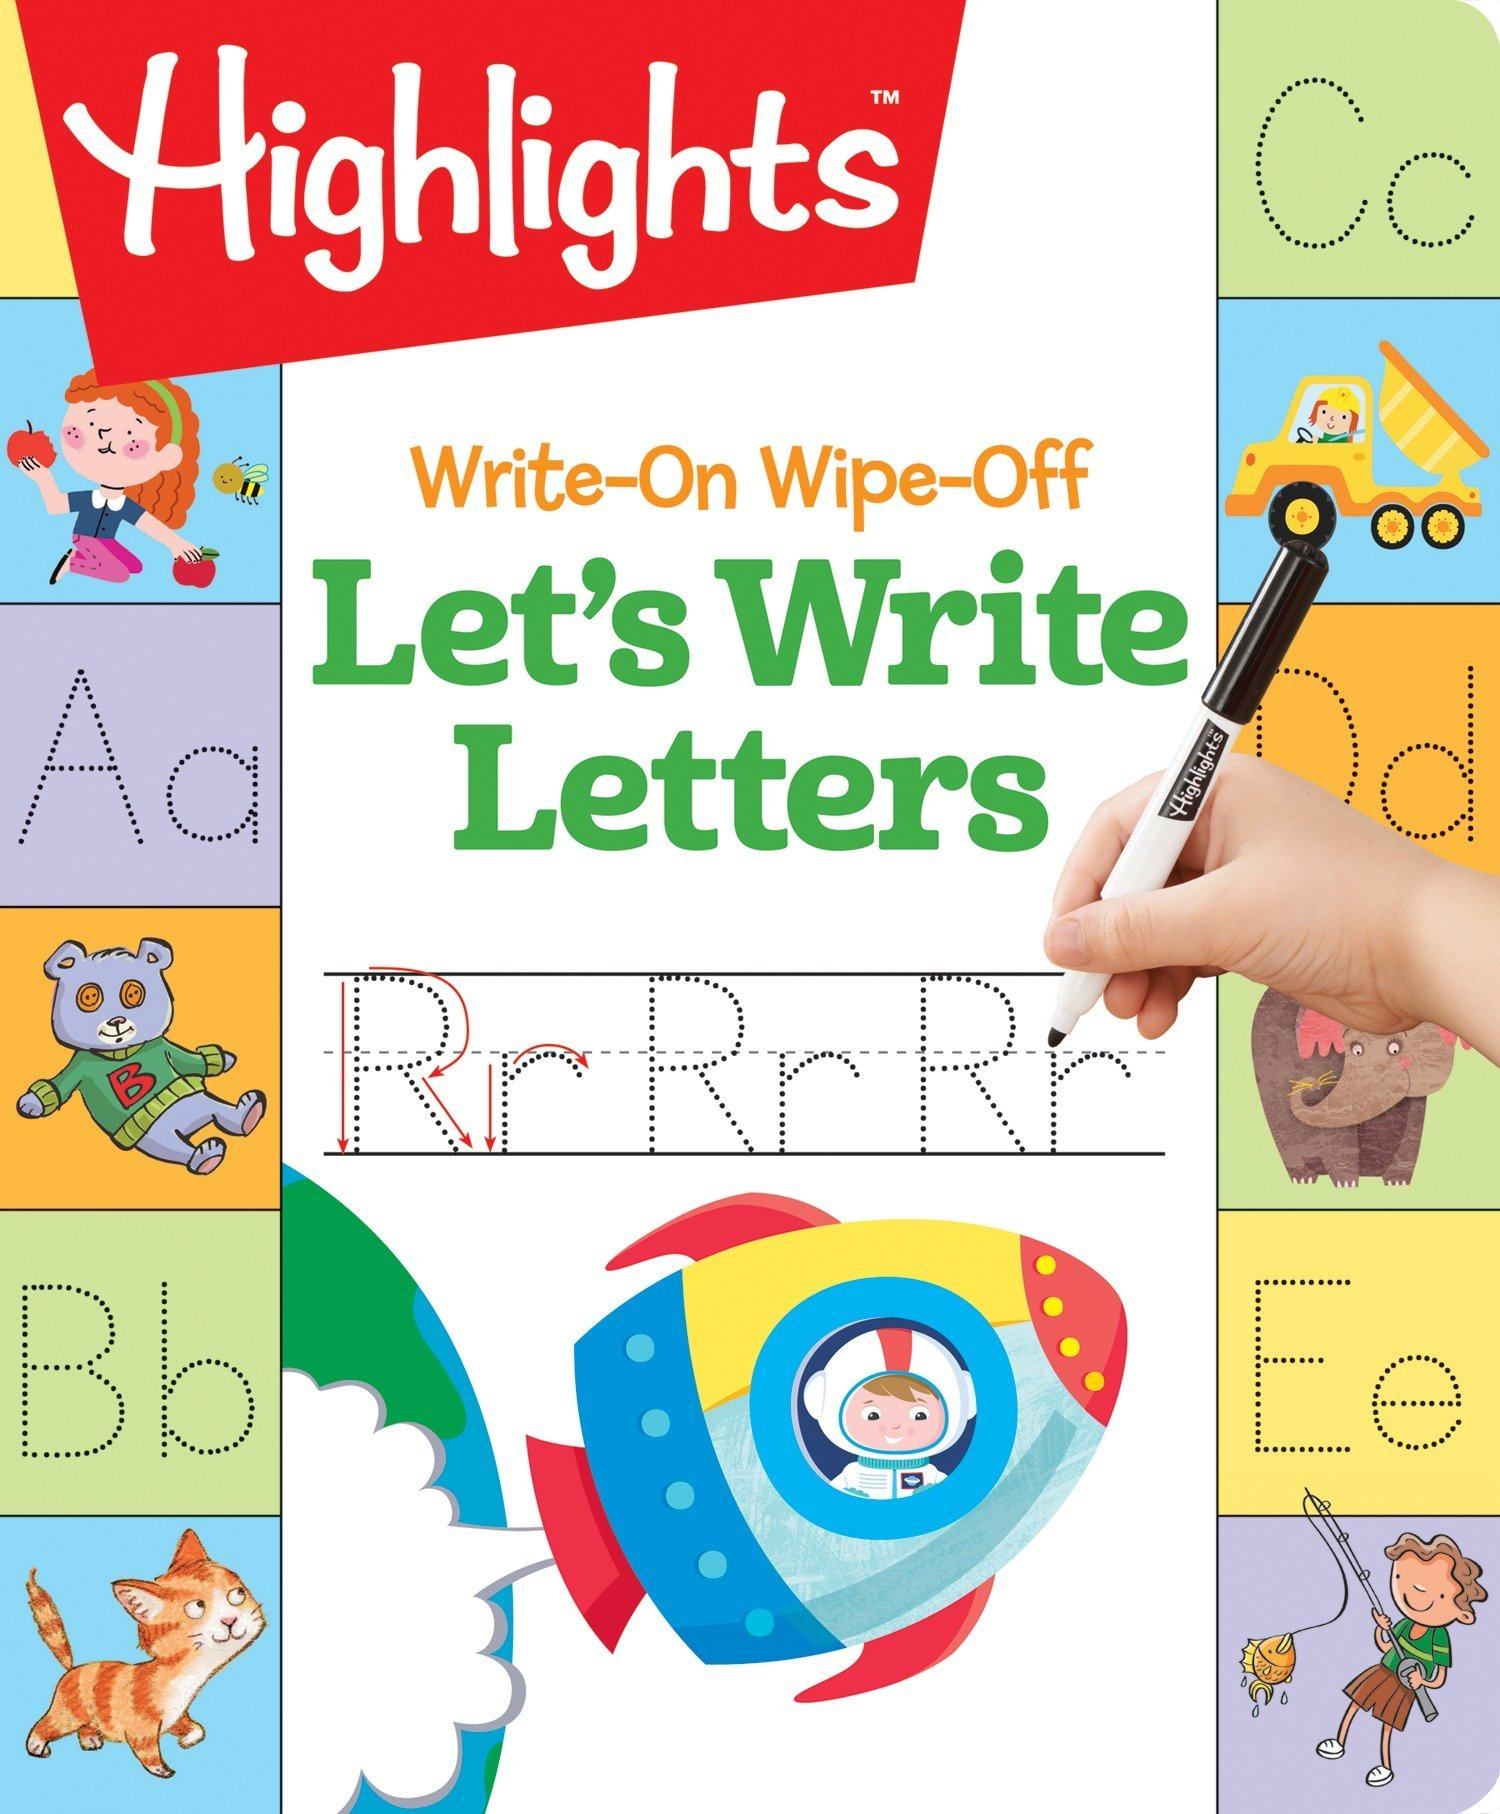 Write-On Wipe-Off Let's Write Letters (Highlights Write-On Wipe-Off Fun to Learn Activity Books)